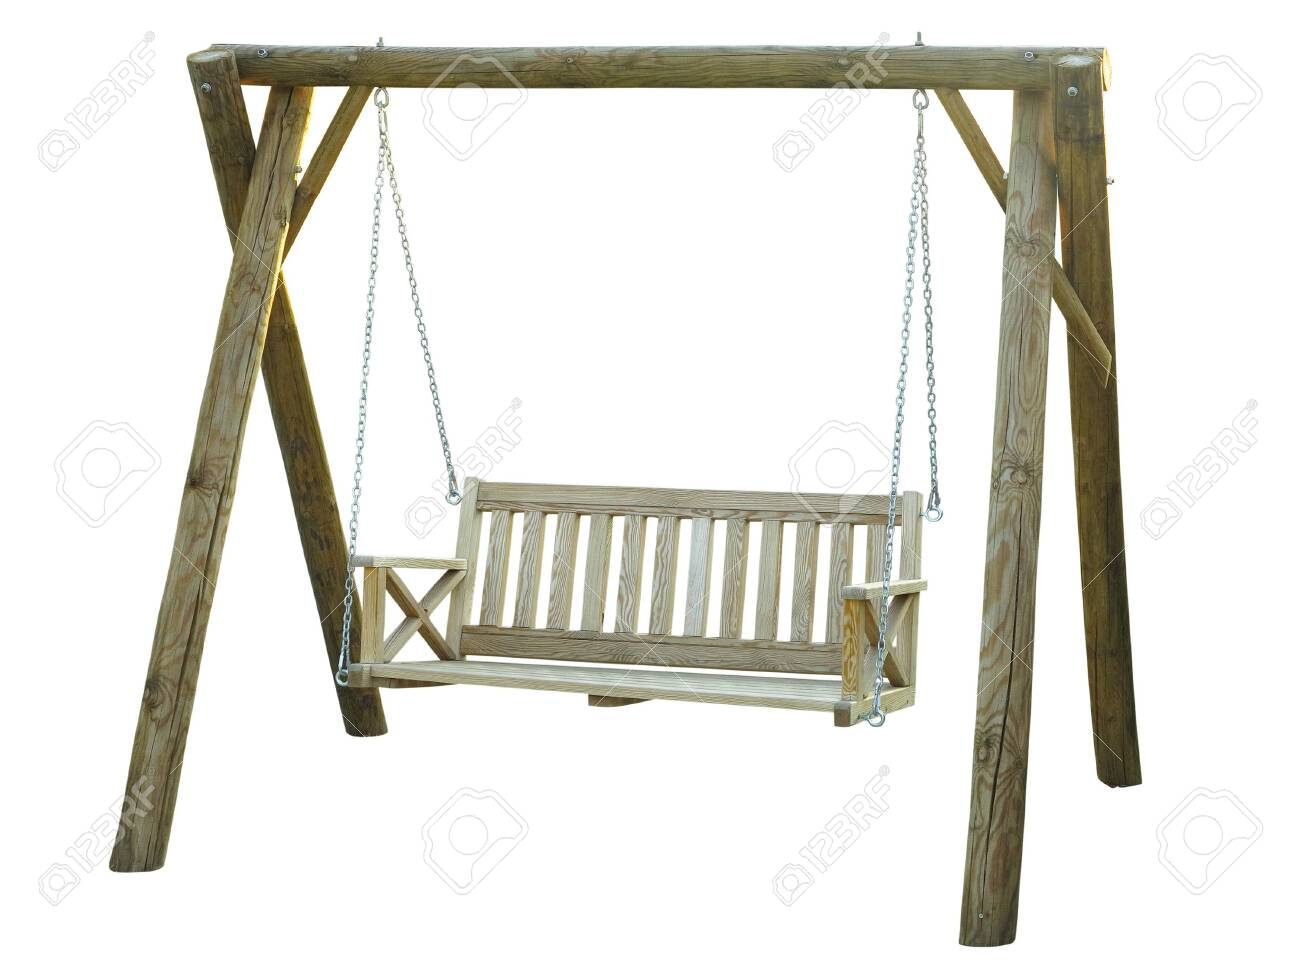 Picture of: Classic Wooden Outdoor Hanging Swing Bench Furniture Isolated Stock Photo Picture And Royalty Free Image Image 129646281